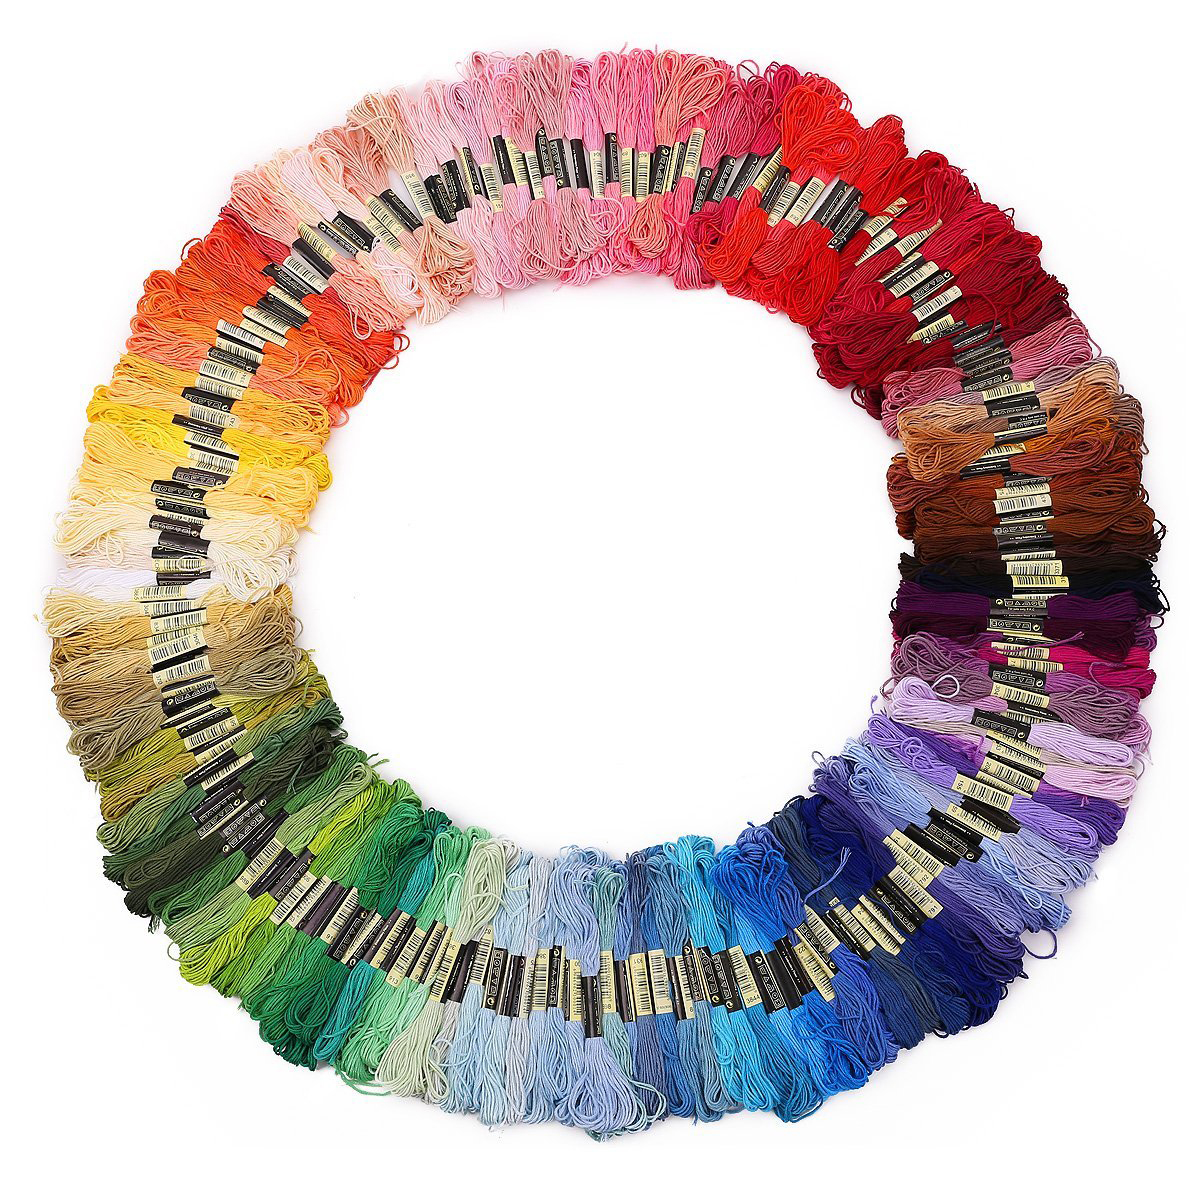 200 Skeins 8M Multi-color Soft Cotton Cross Stitch Embroidery Threads Floss Sewing Threads (Random Color)